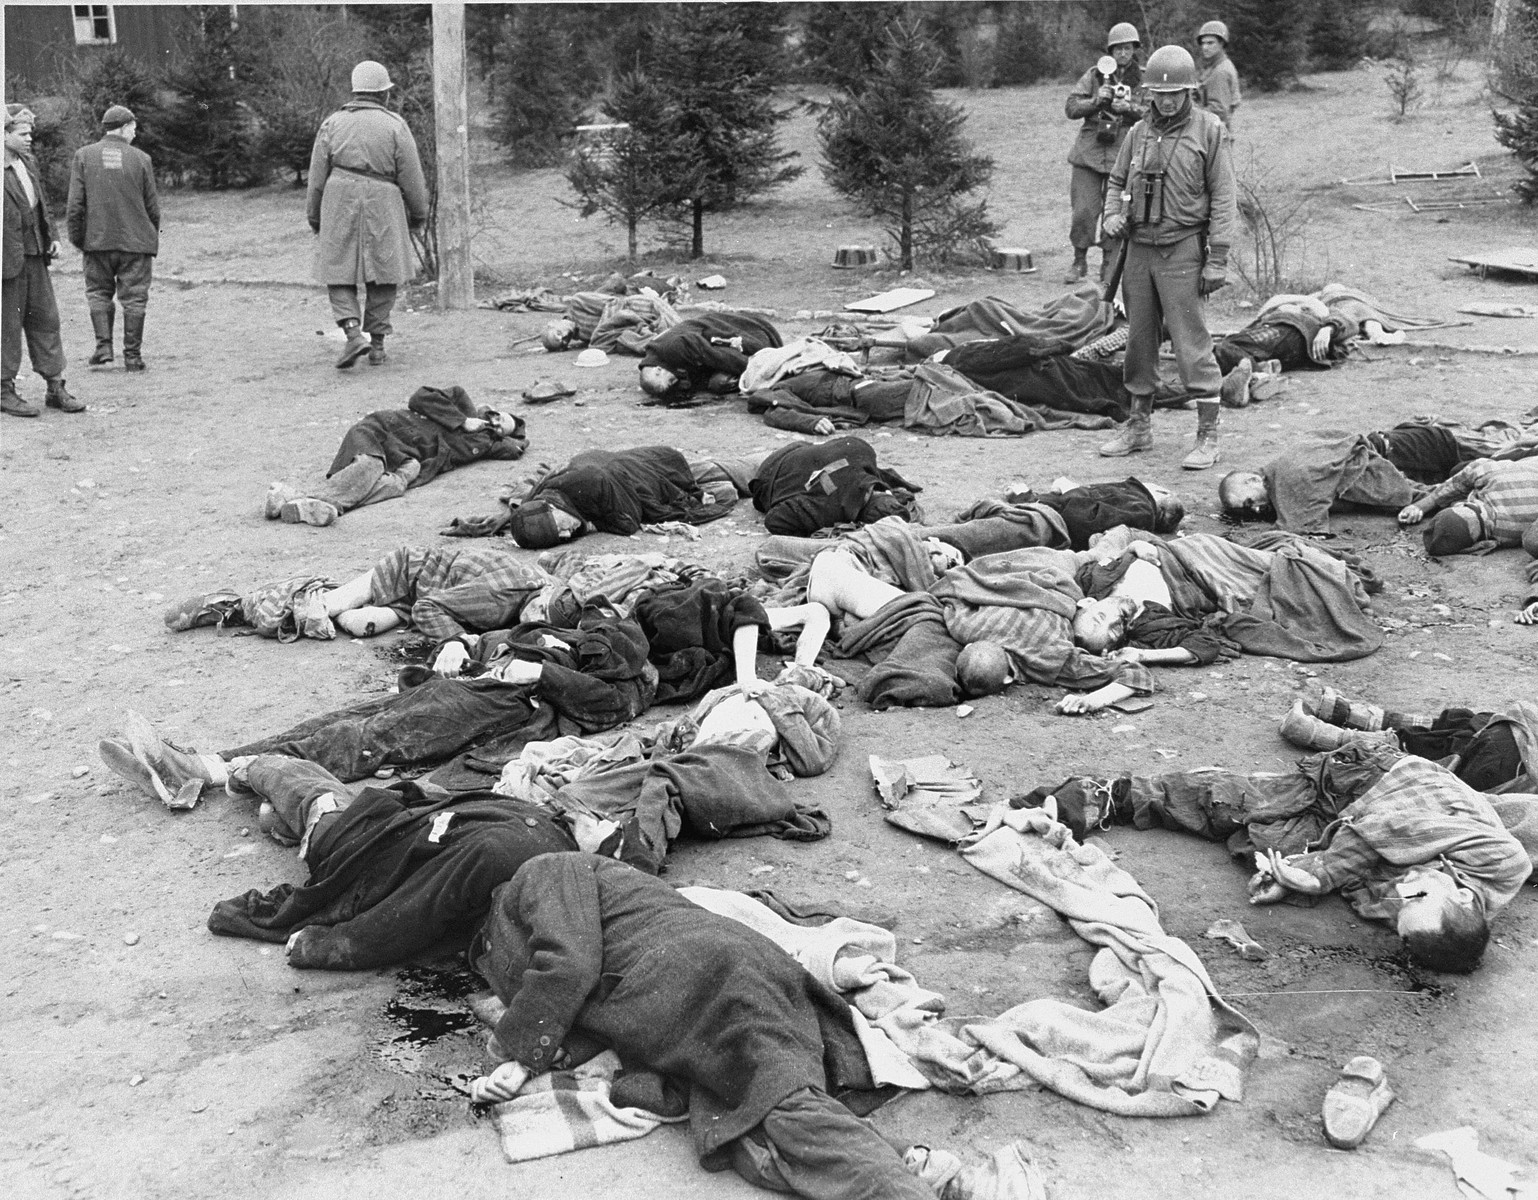 American soldiers view the bodies of prisoners that lie strewn on the ground in the newly liberated Ohrdruf concentration camp.  1st Lieutenant Earl J. Kelly is standing on the right.